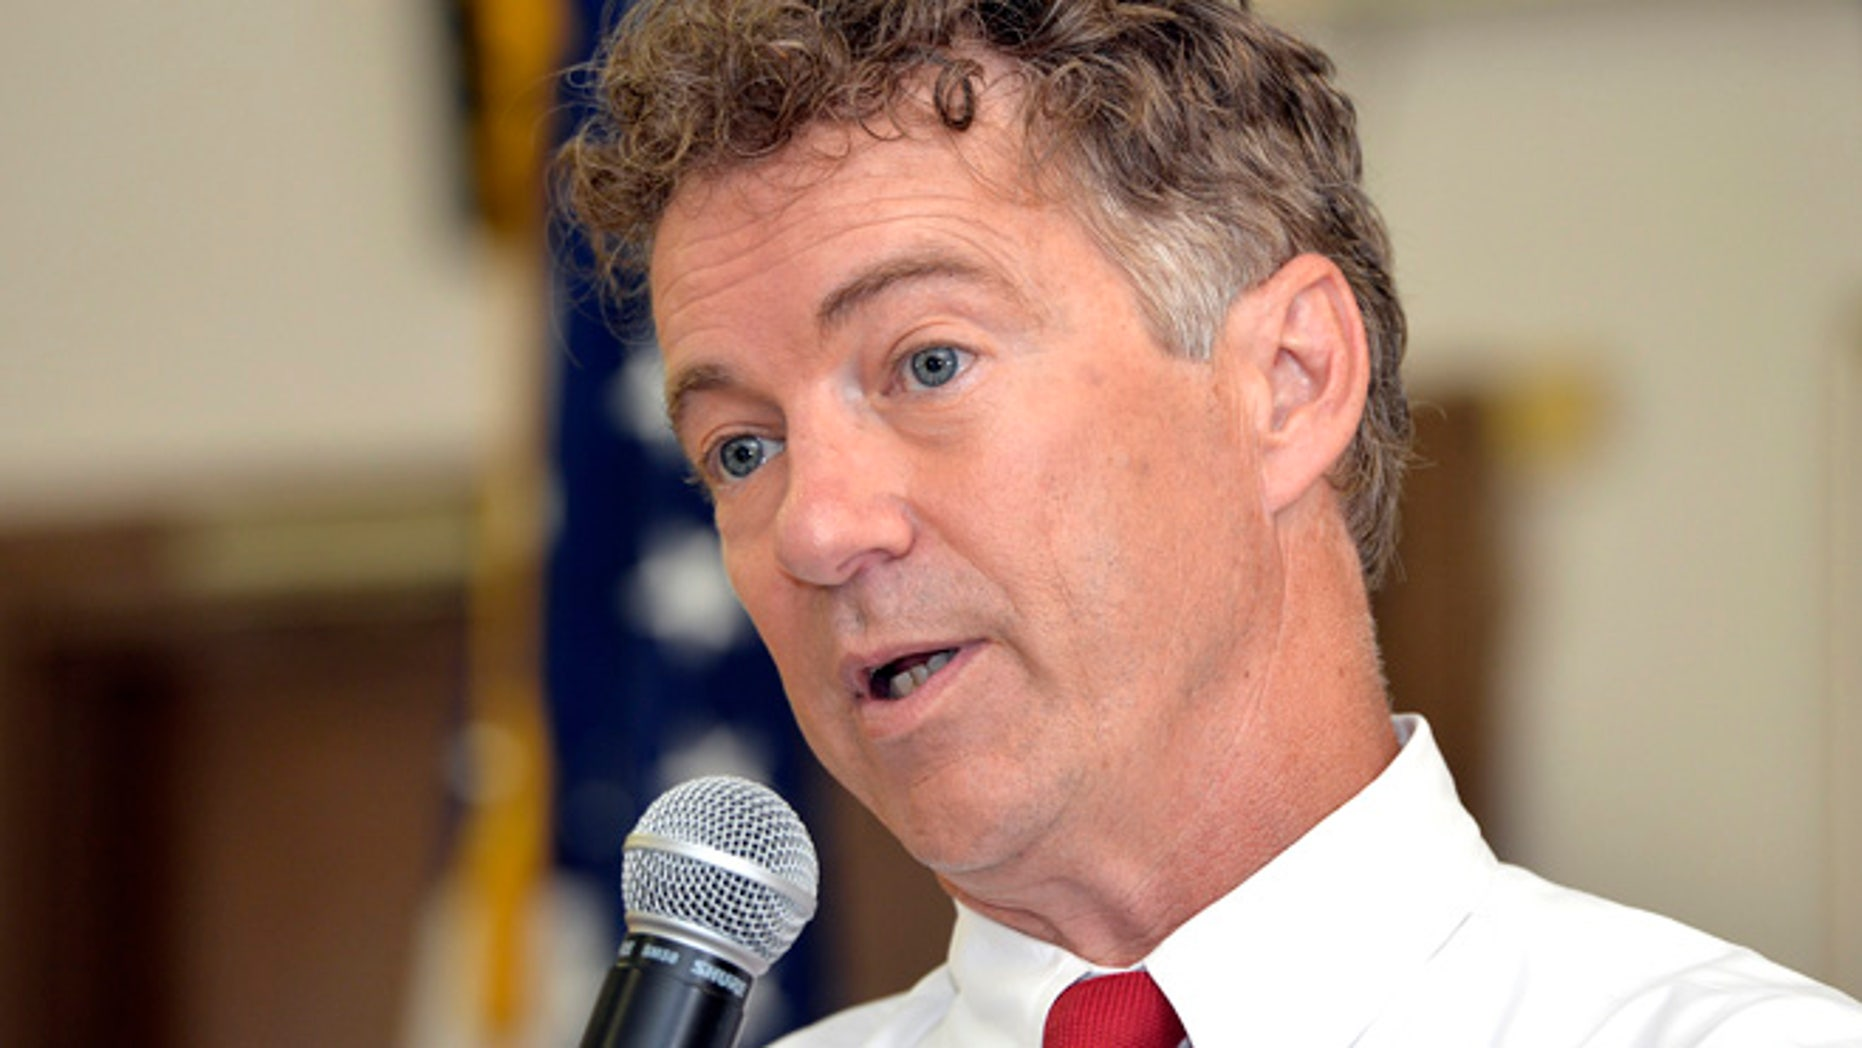 Aug. 10, 2015: Republican presidential candidate Sen. Rand Paul, R-Ky. speaks in Bowling Green, Ky. Pauls re-election campaign is on hold pending the outcome of his presidential bid. (AP)